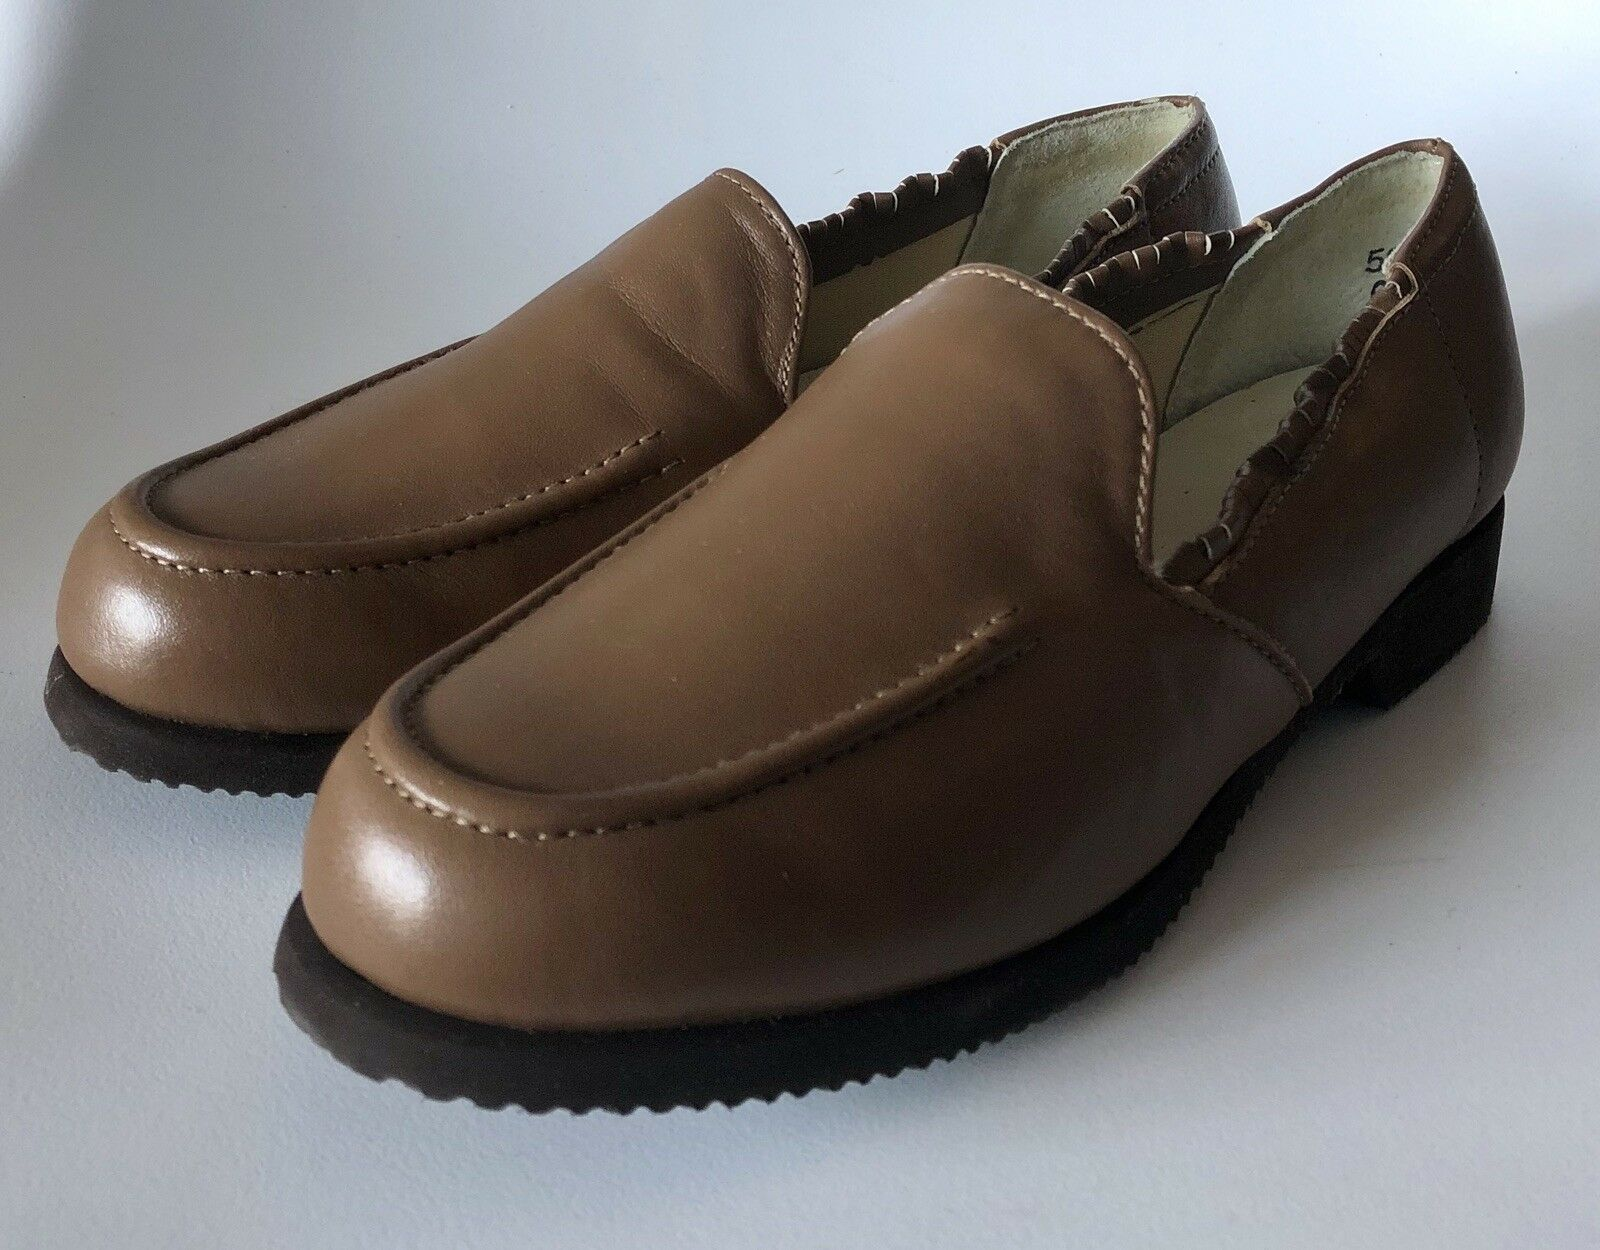 Hush Puppies New Vintage Brown Hard Sole Slippers 6.5W New Dutchess Wallaby Cork